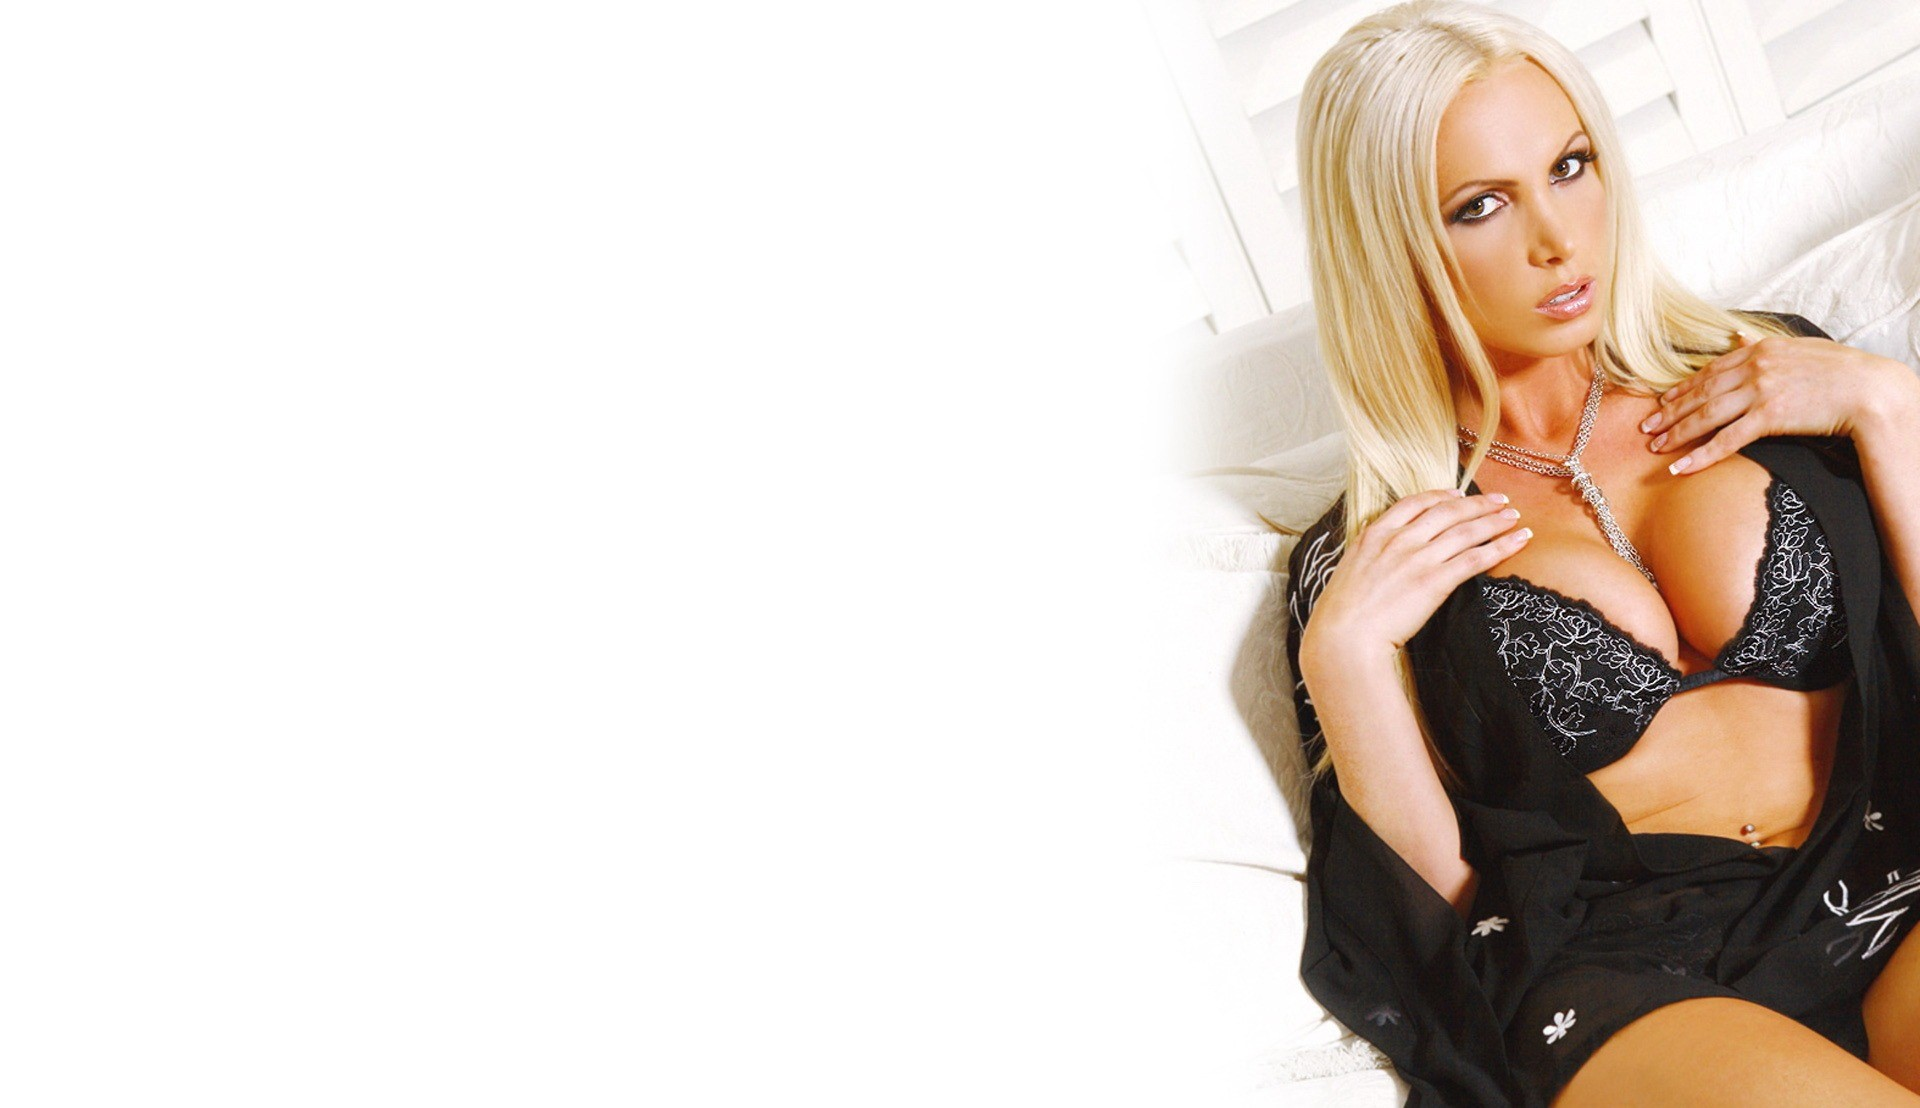 Nikki Benz 1080p Wallpapers